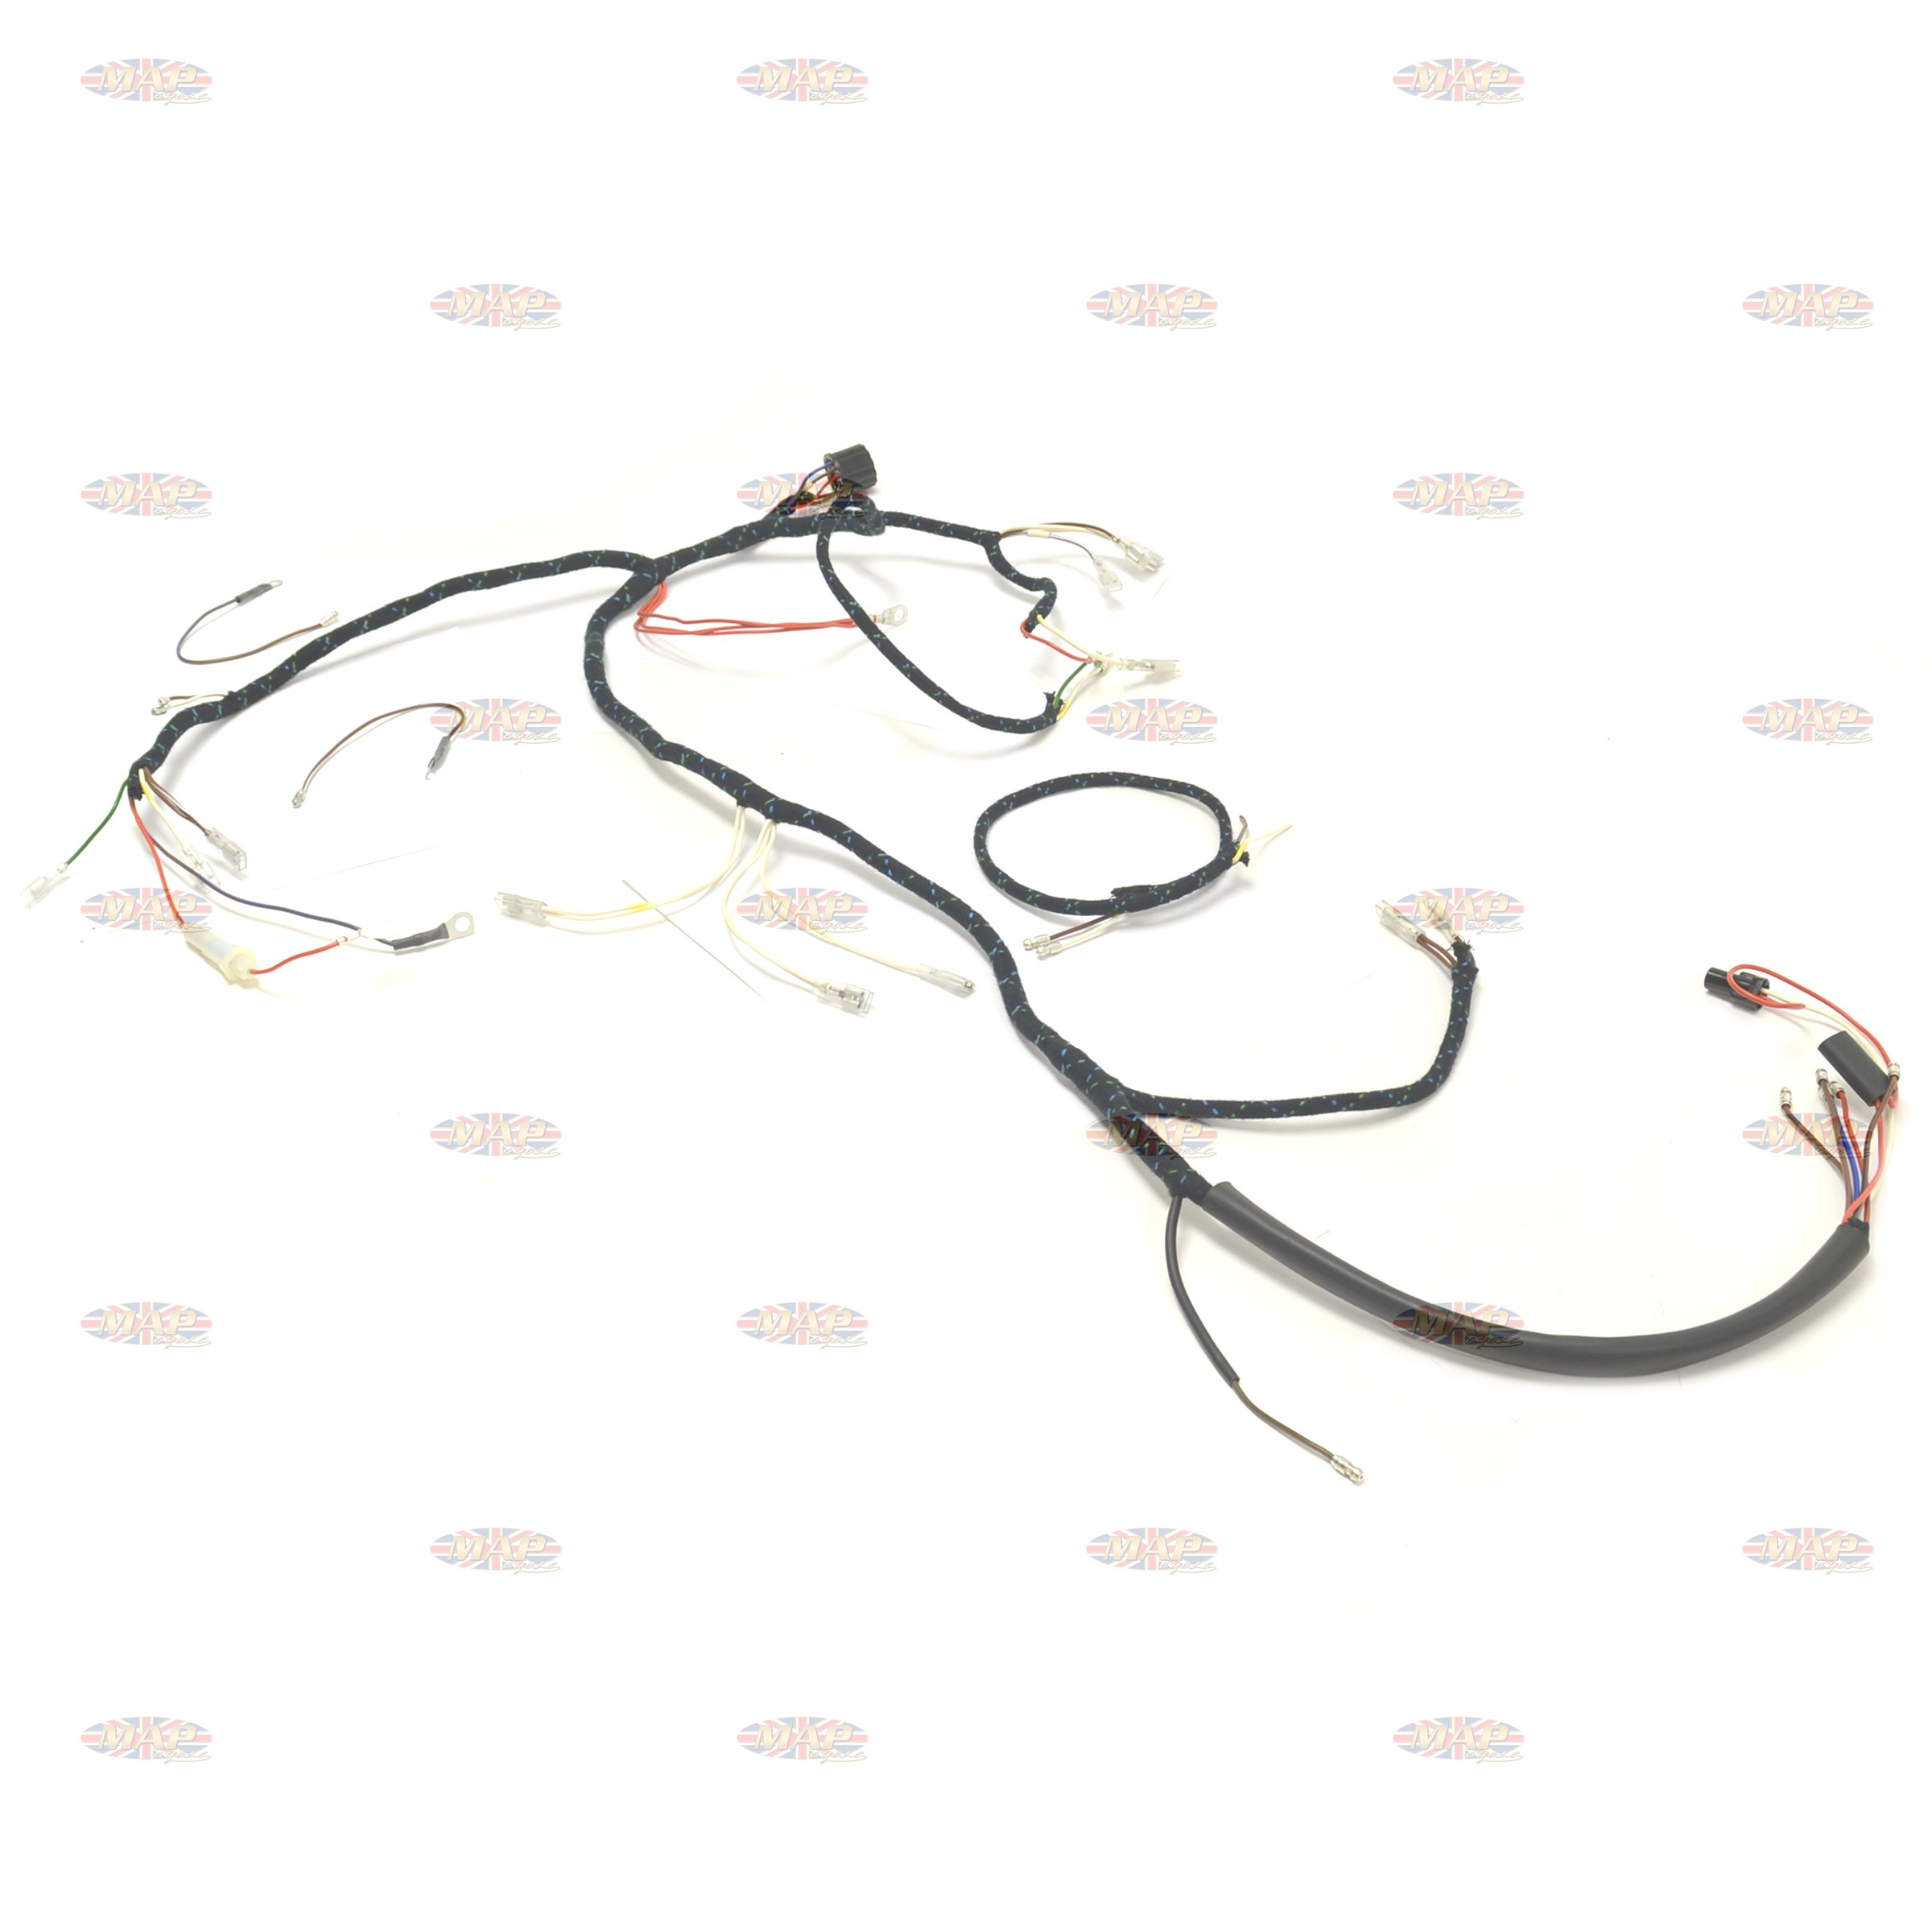 Triumph T90 T100 T120 Tr6 Uk Made 12 Volt Wiring Harness